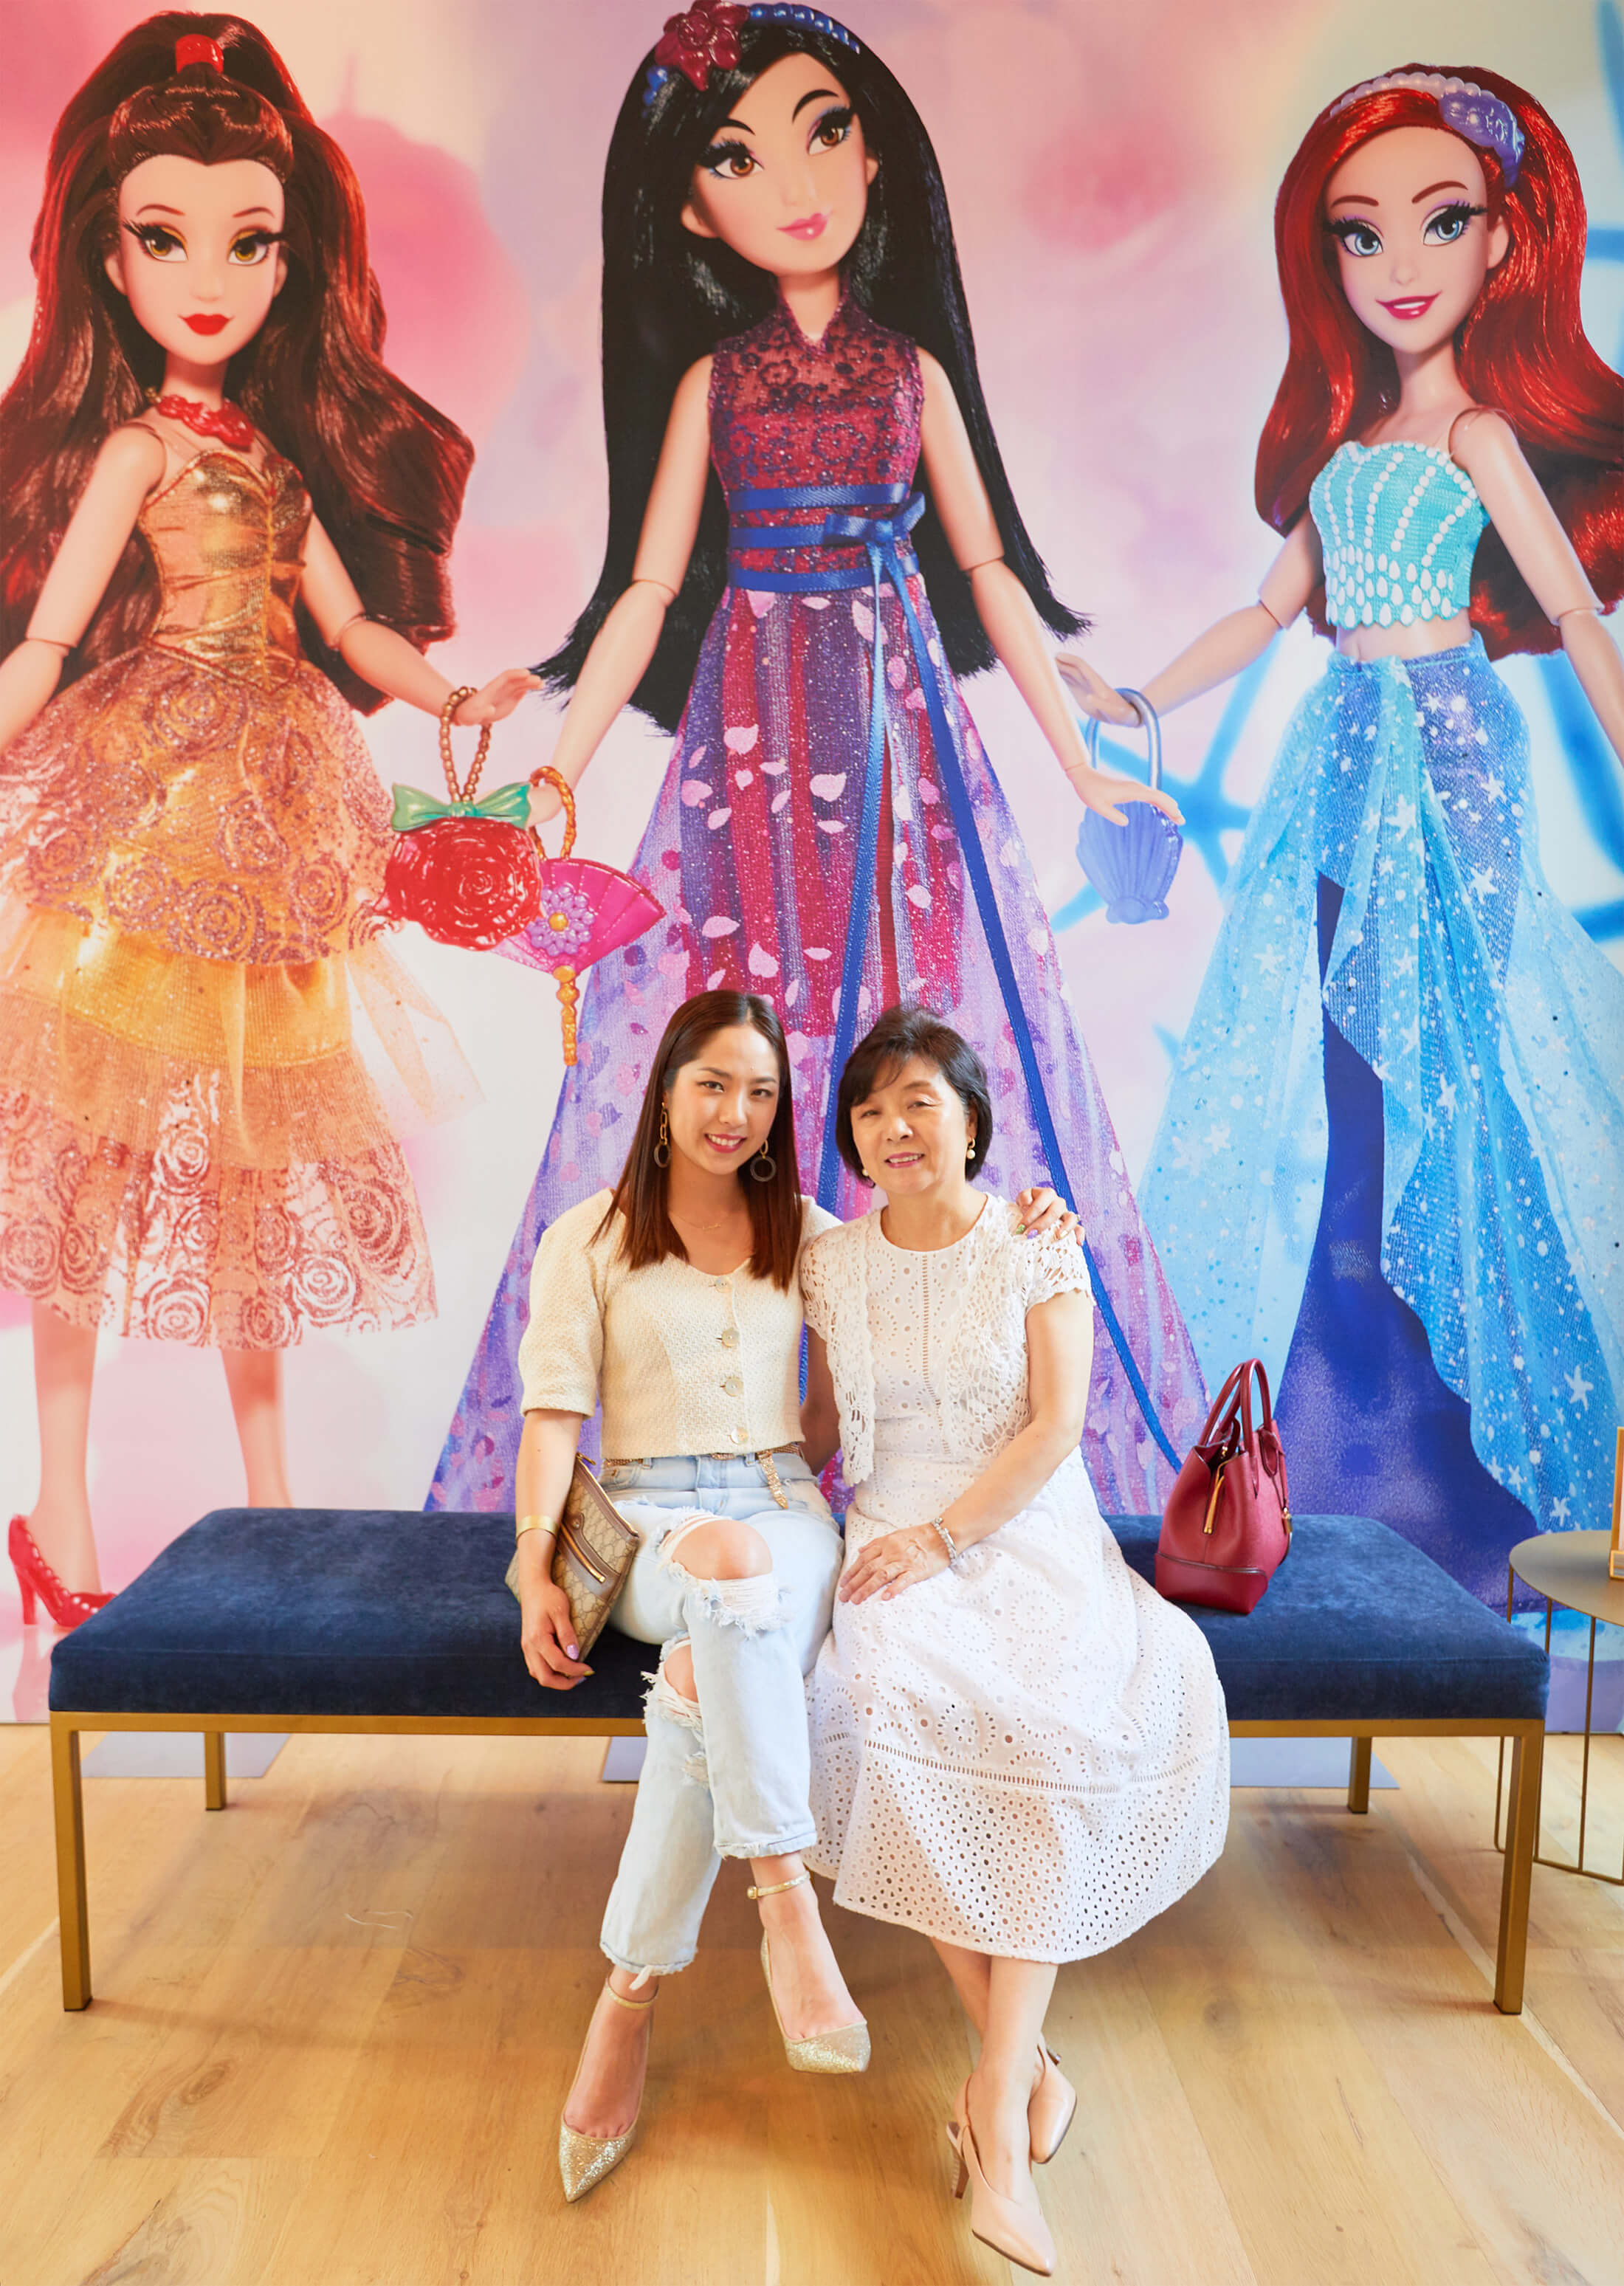 TMA leveraged the agency's creative, consumer engagement, hospitality, and experiential marketing capabilities to deliver the ultimate Disney Princess experience, including themed rooms with tons of Instagrammable moments.